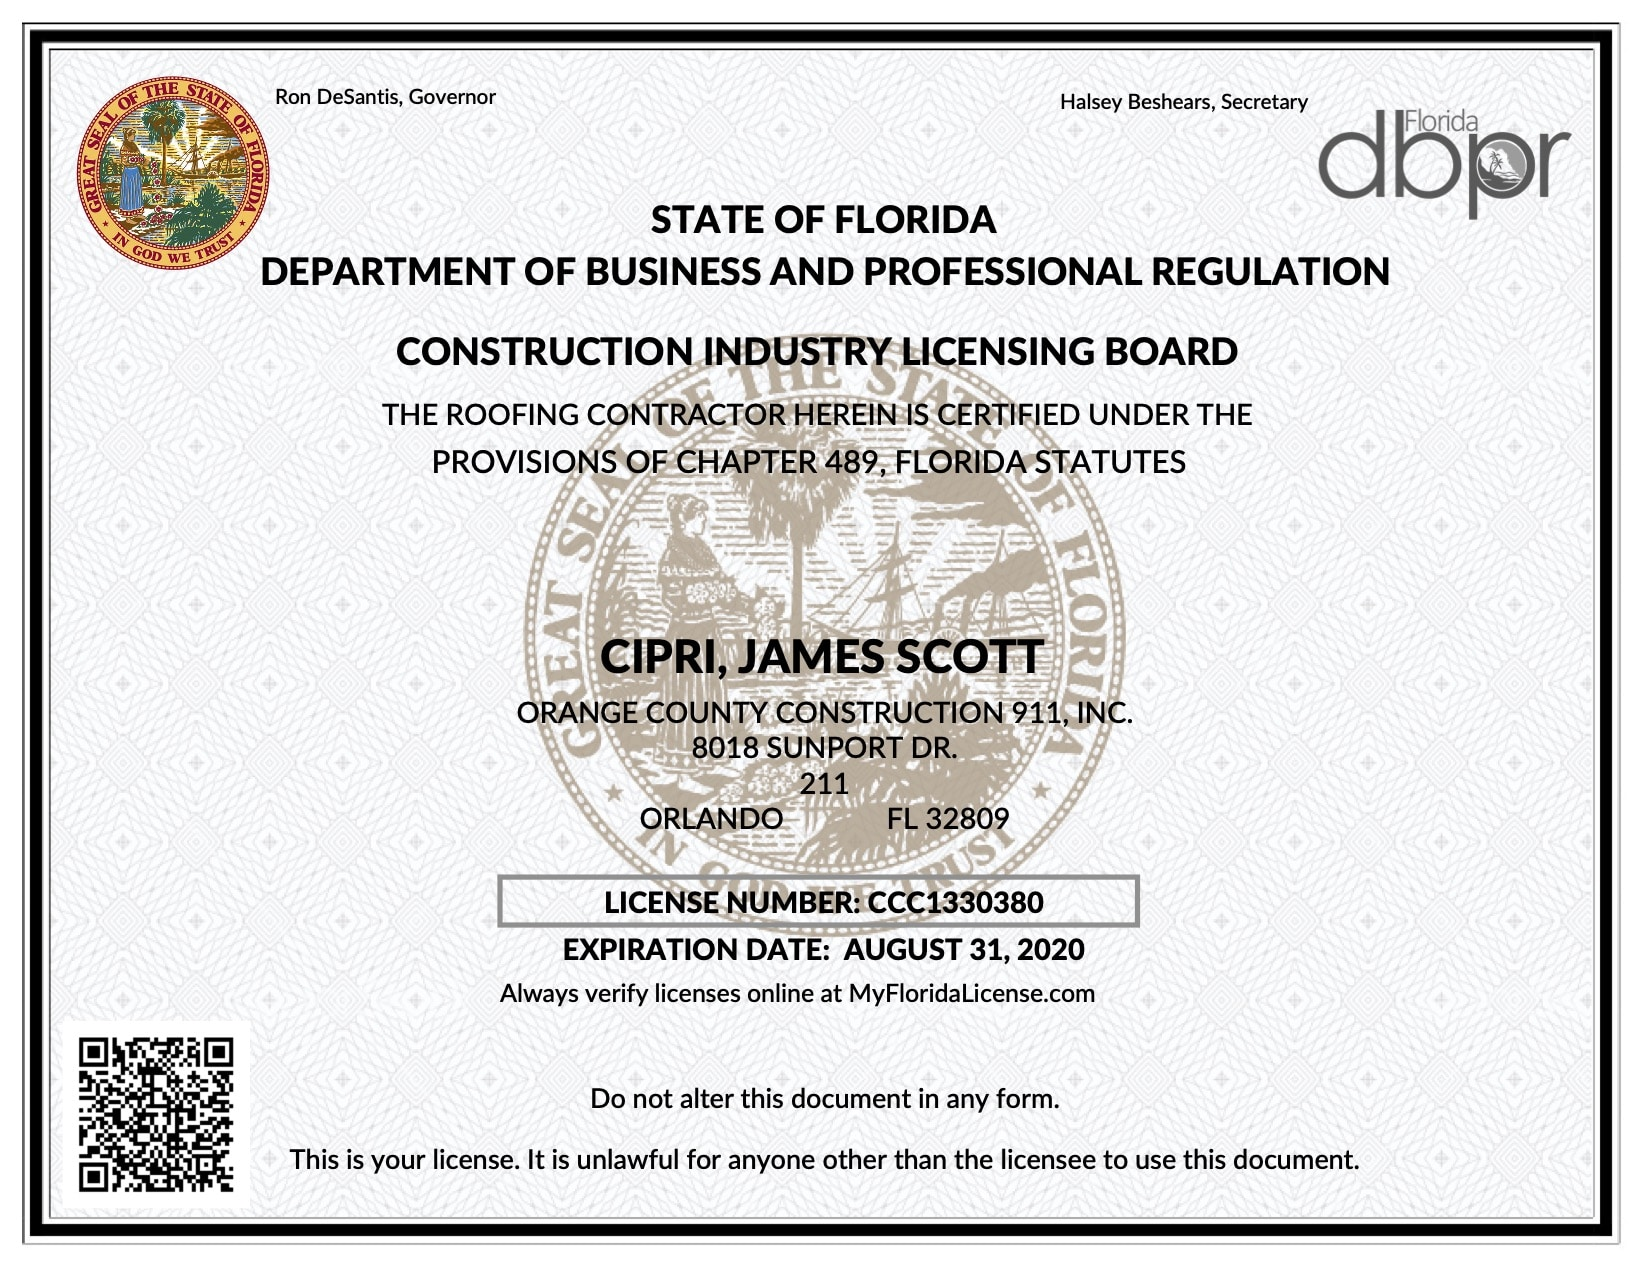 OC Roofing Contractor License